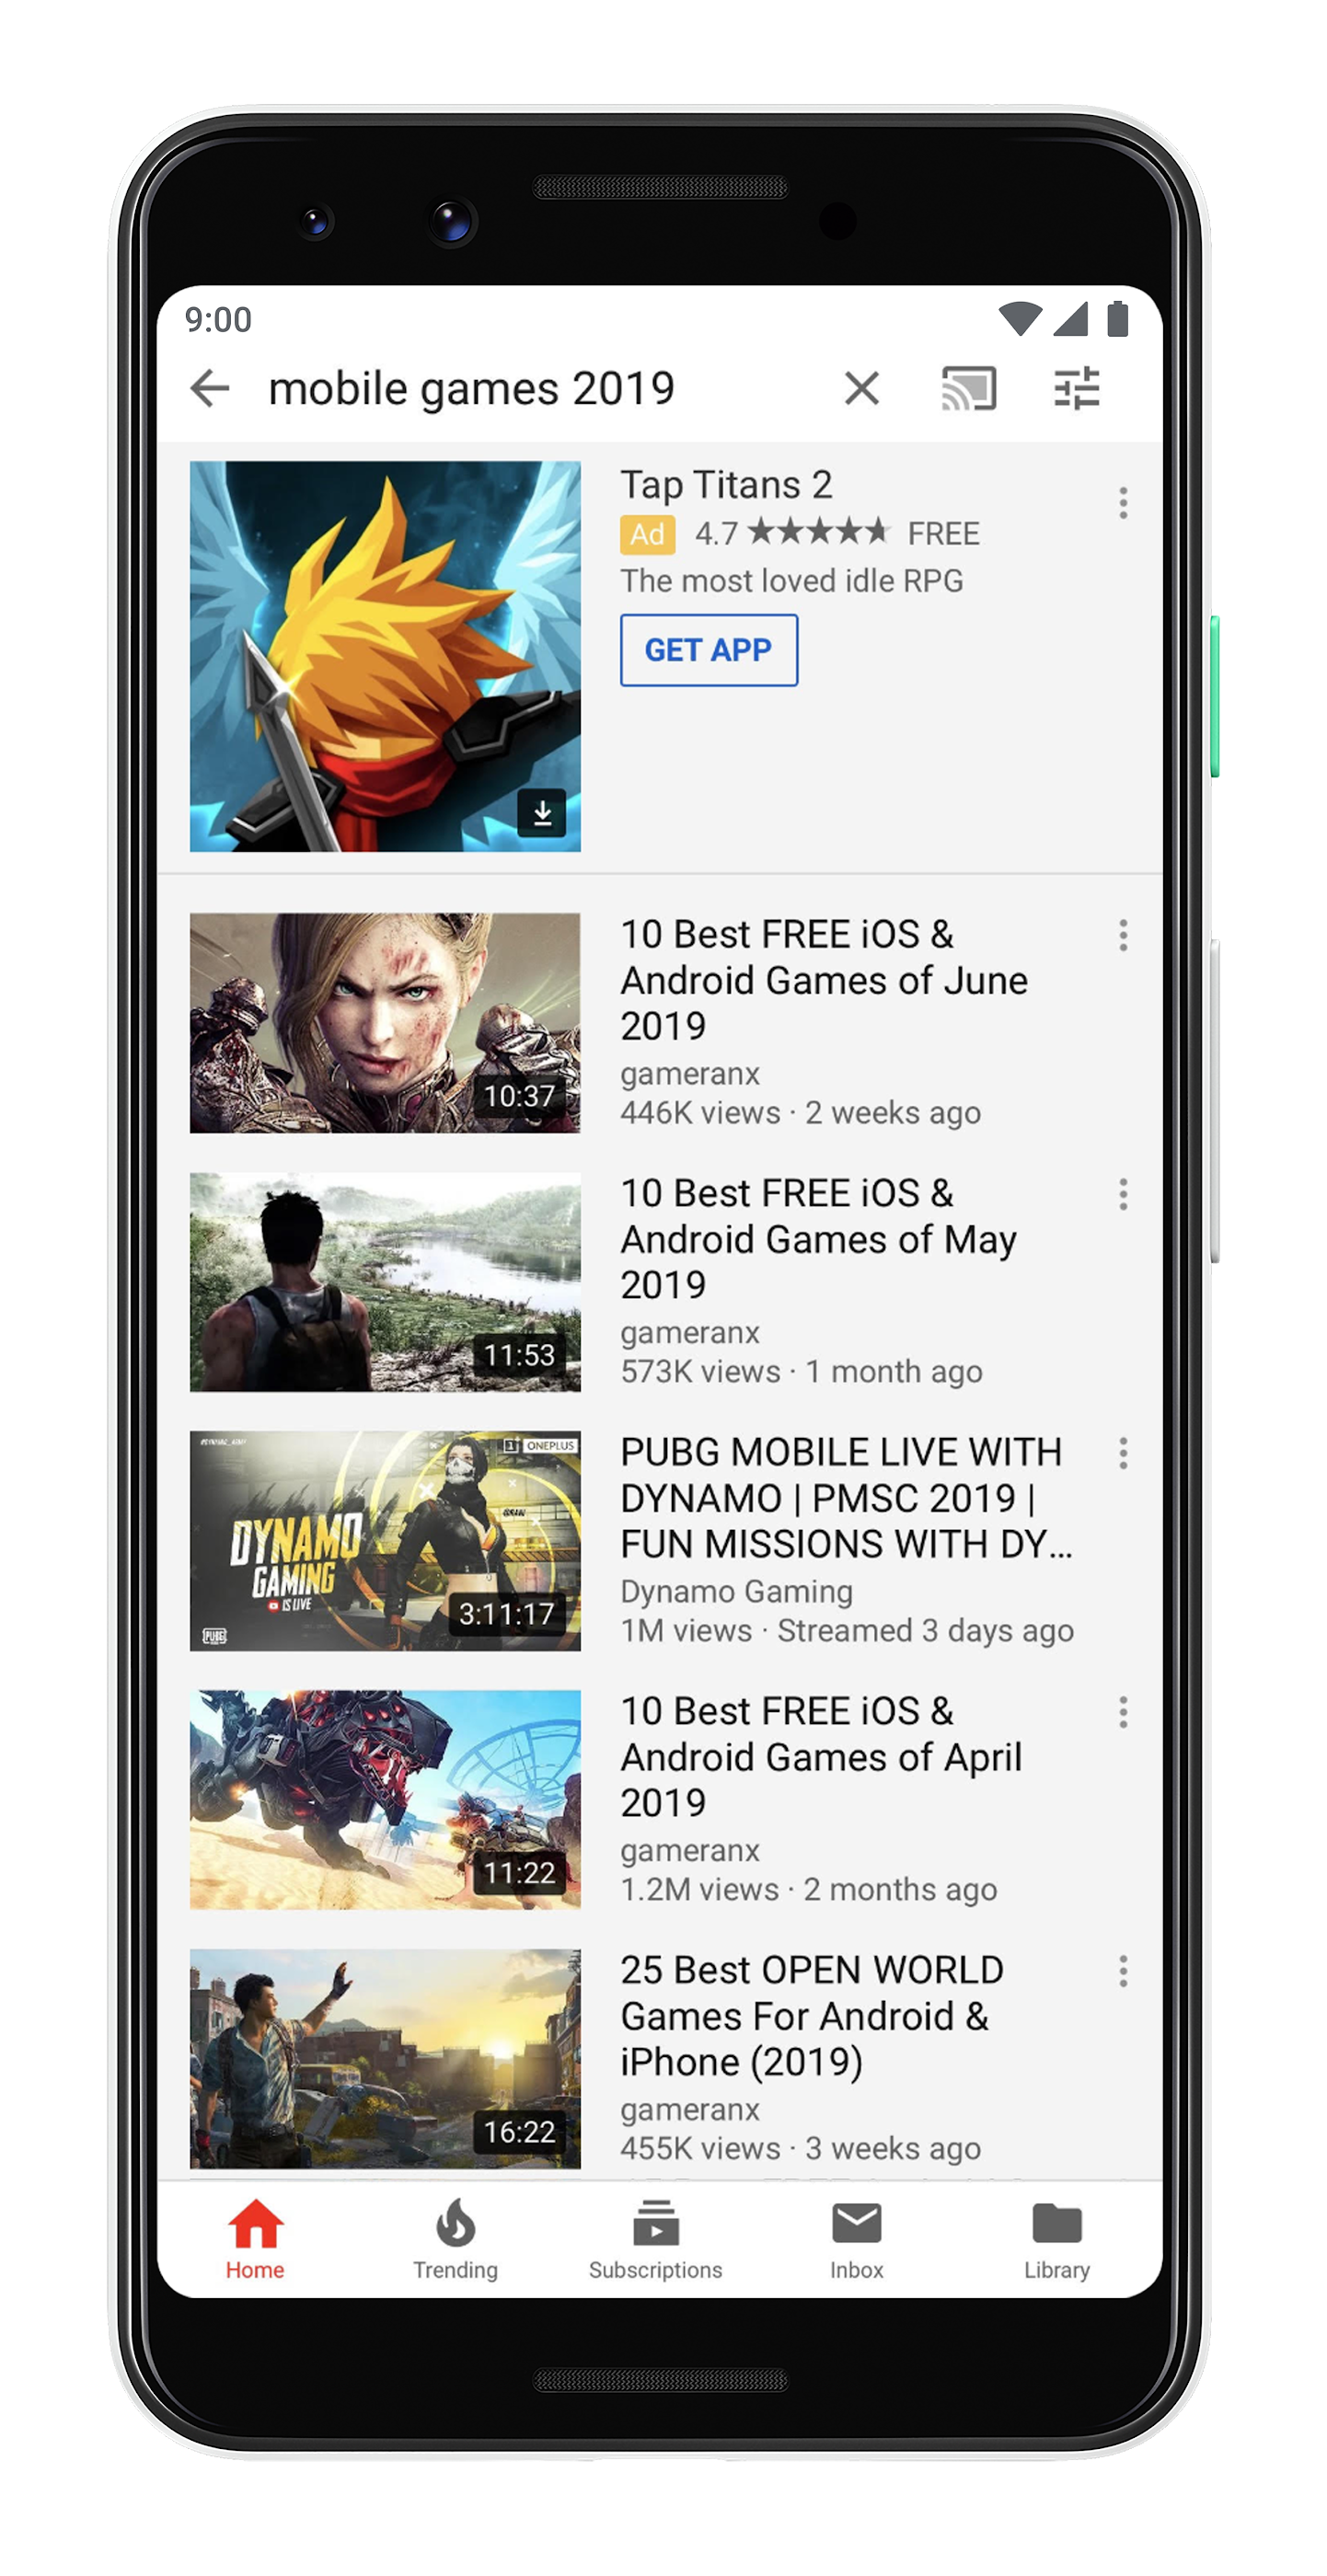 App ad for Tap Titans 2 in YouTube Search